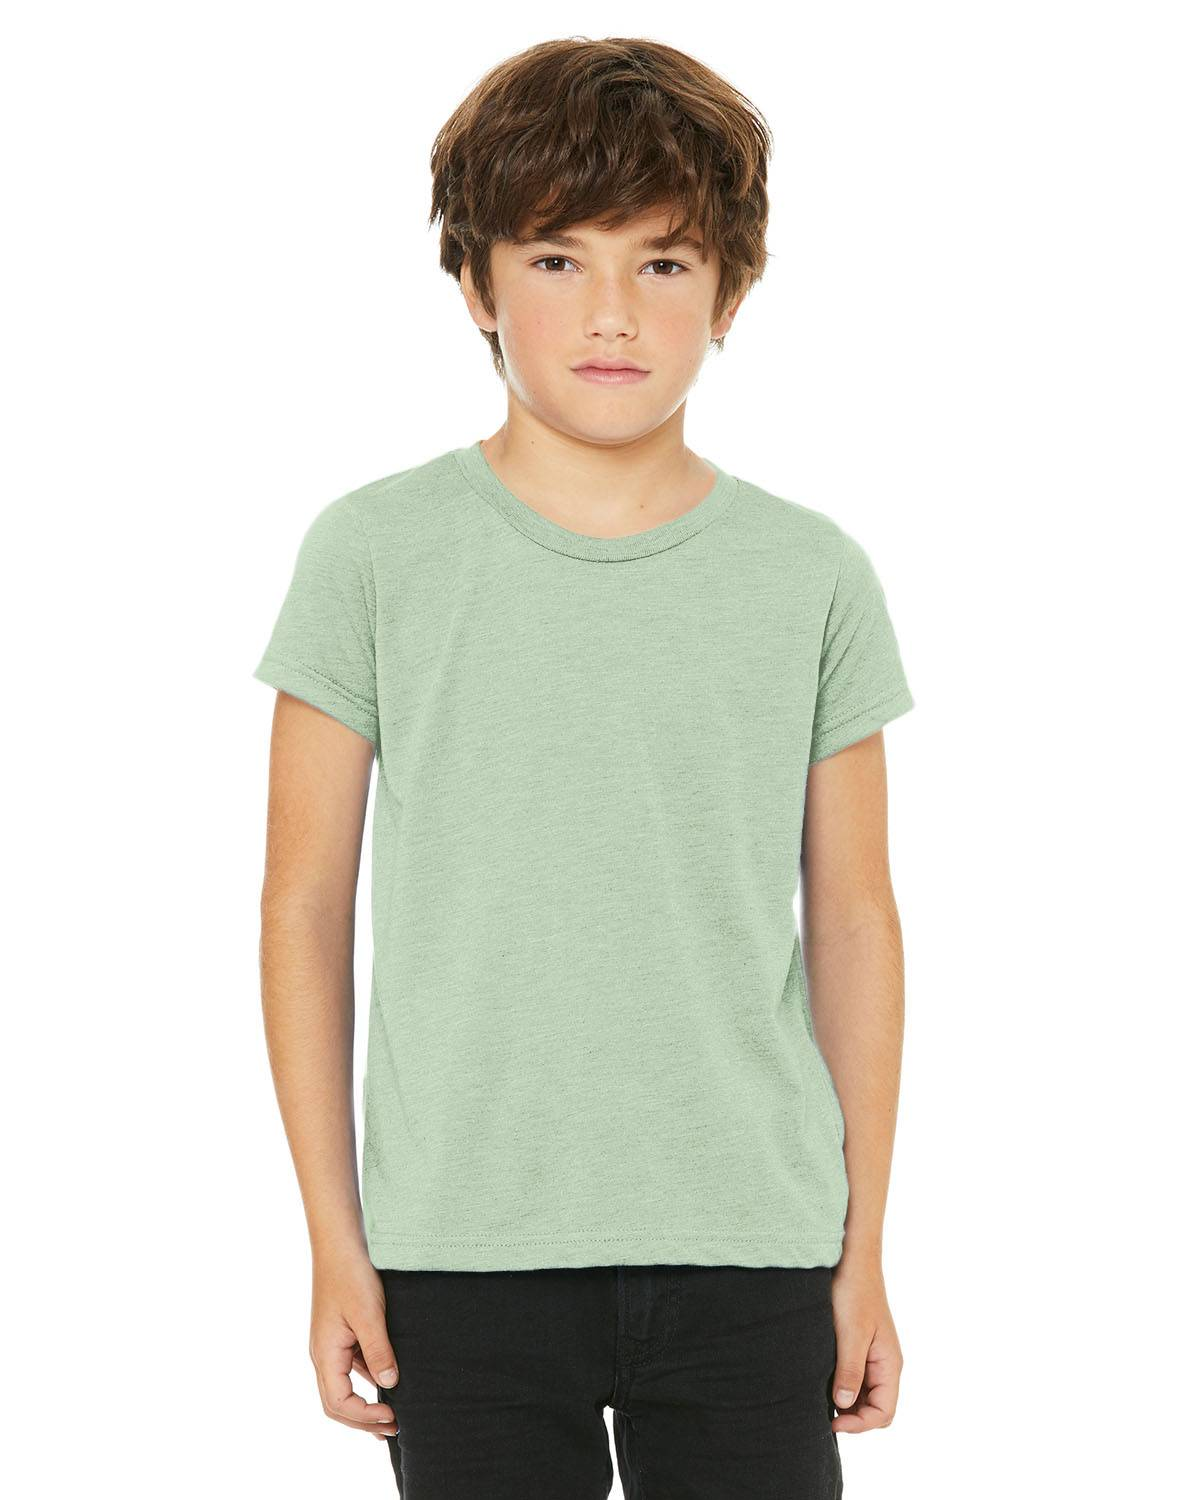 Bella + Canvas Youth Triblend Short-Sleeve T-Shirt | 3413Y